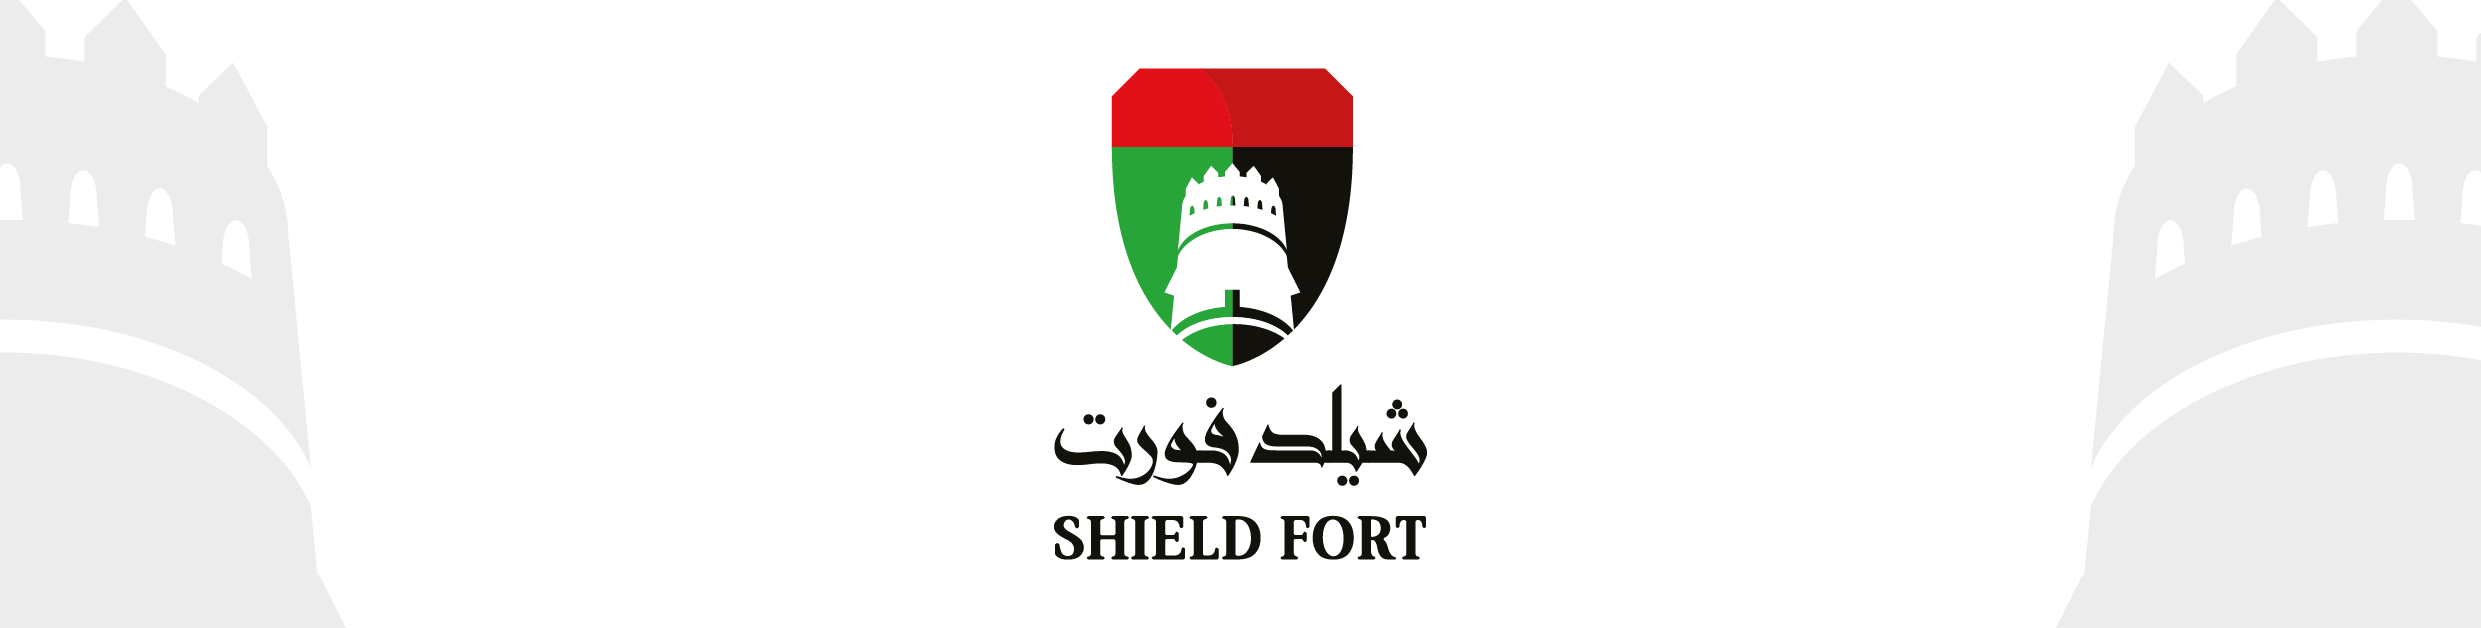 SHIELD FORT